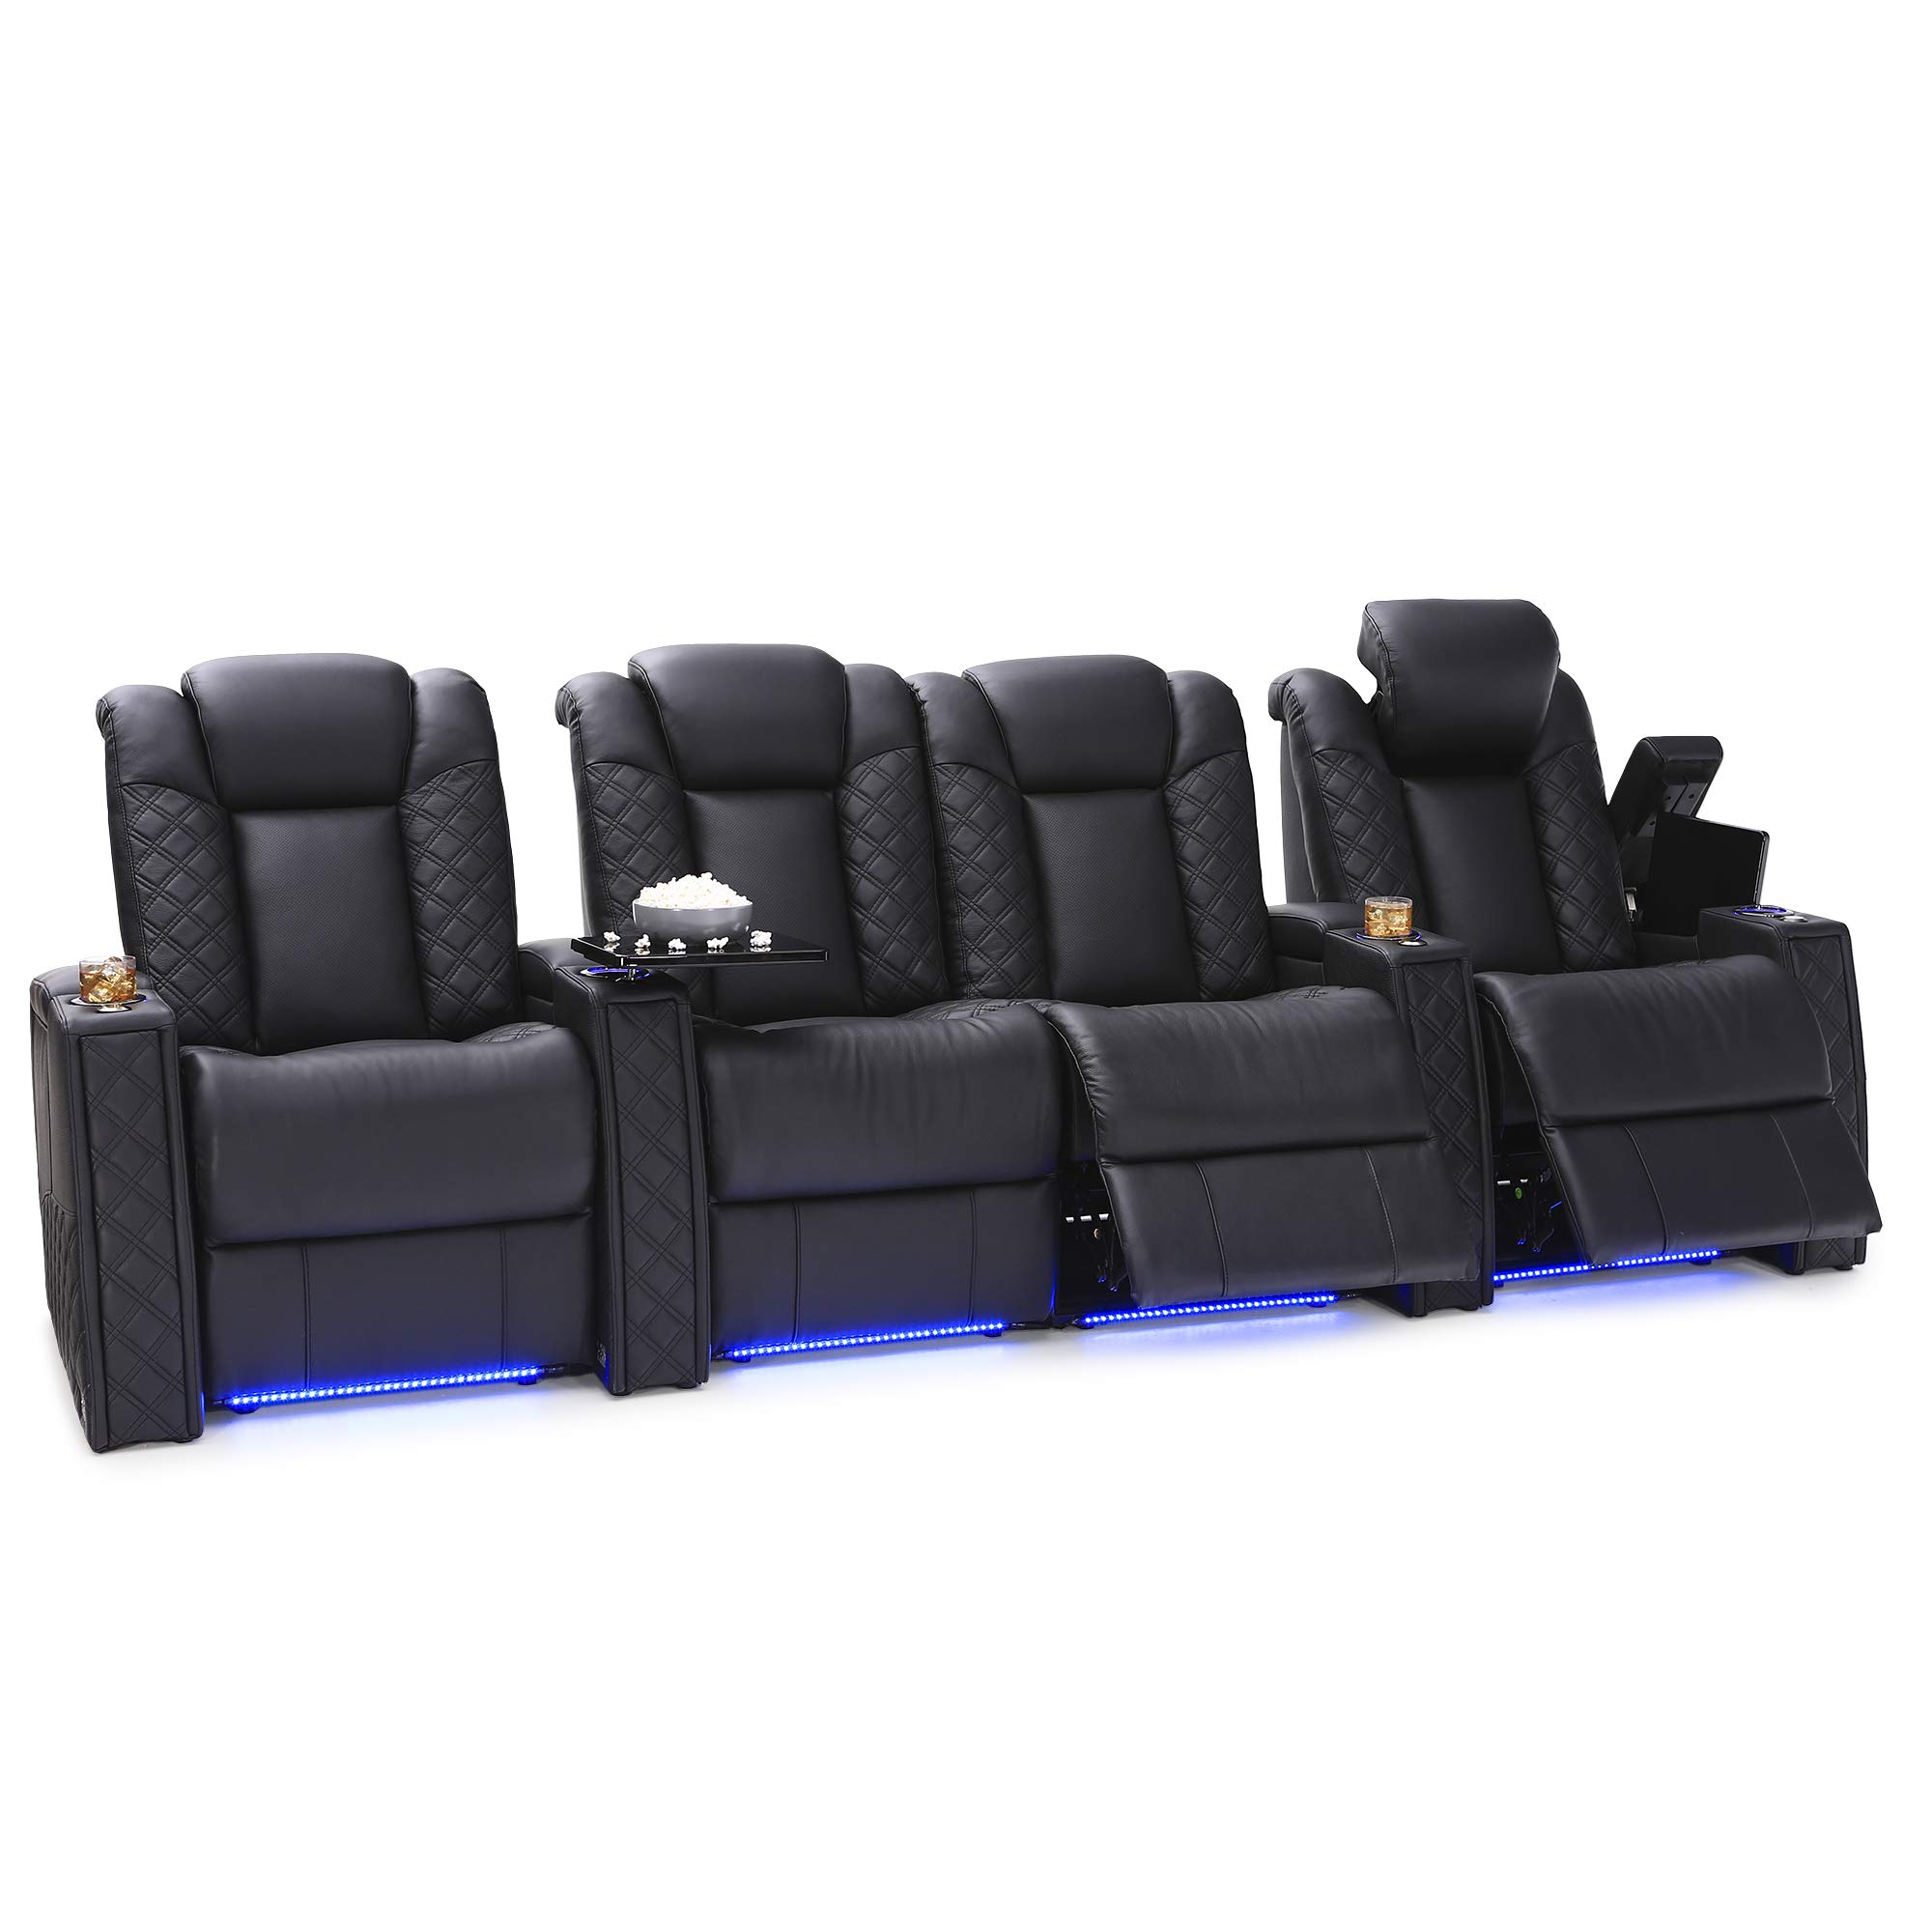 Seatcraft Enigma Home Theater Seating Leather Power Recline with Powered Headrest and Powered Lumbar Support, Built-in SoundShaker, Lighted Cup Holders and Base, Row of 4 Middle Loveseat, Black by Seatcraft